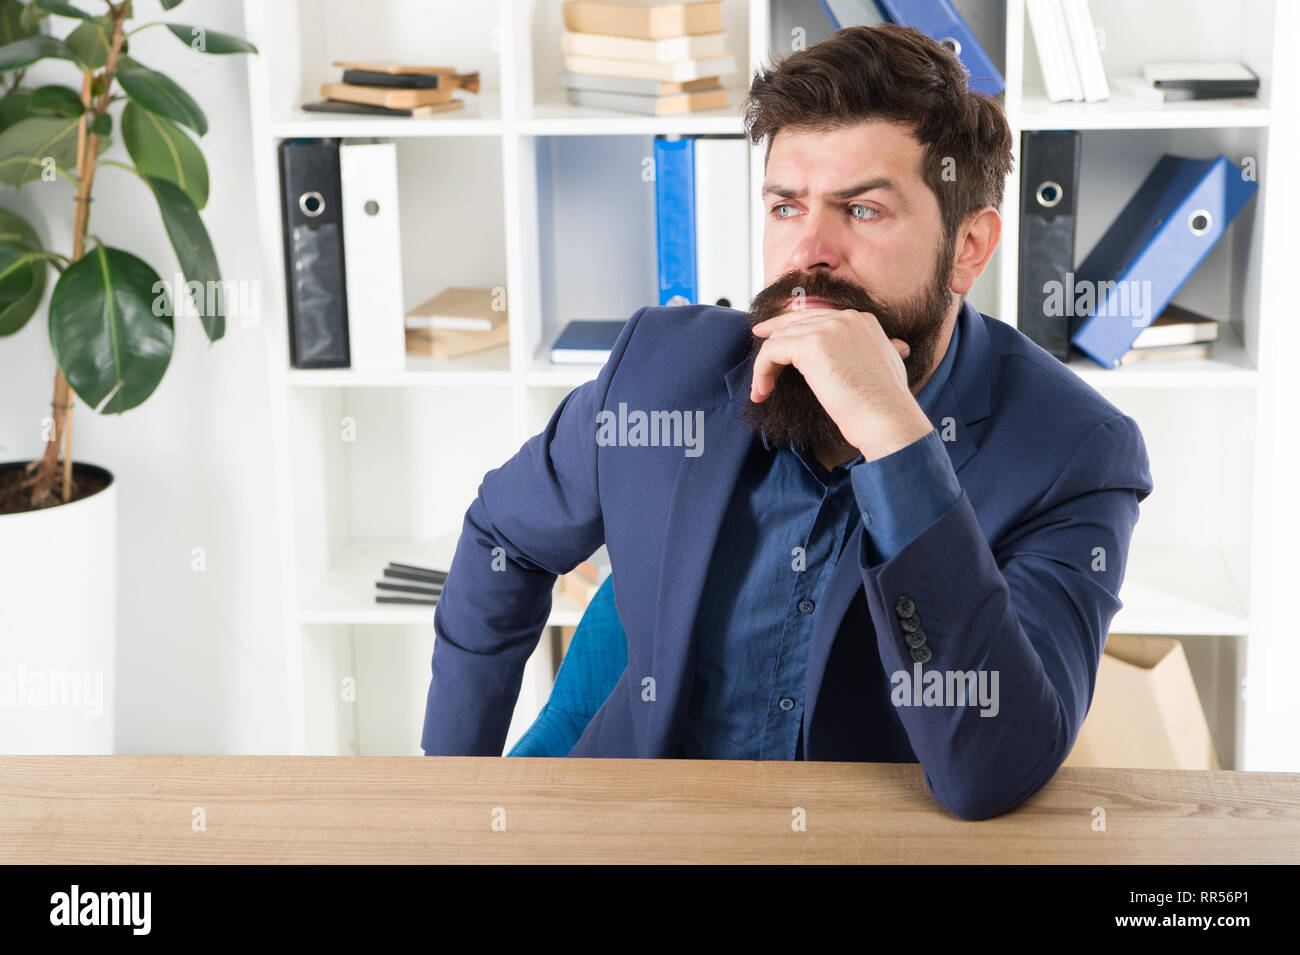 Man bearded businessman thoughtful face solving problem making decision. Mental process of choosing from set of alternatives. Hard decision. Business decision. Decision making is part of management. - Stock Image